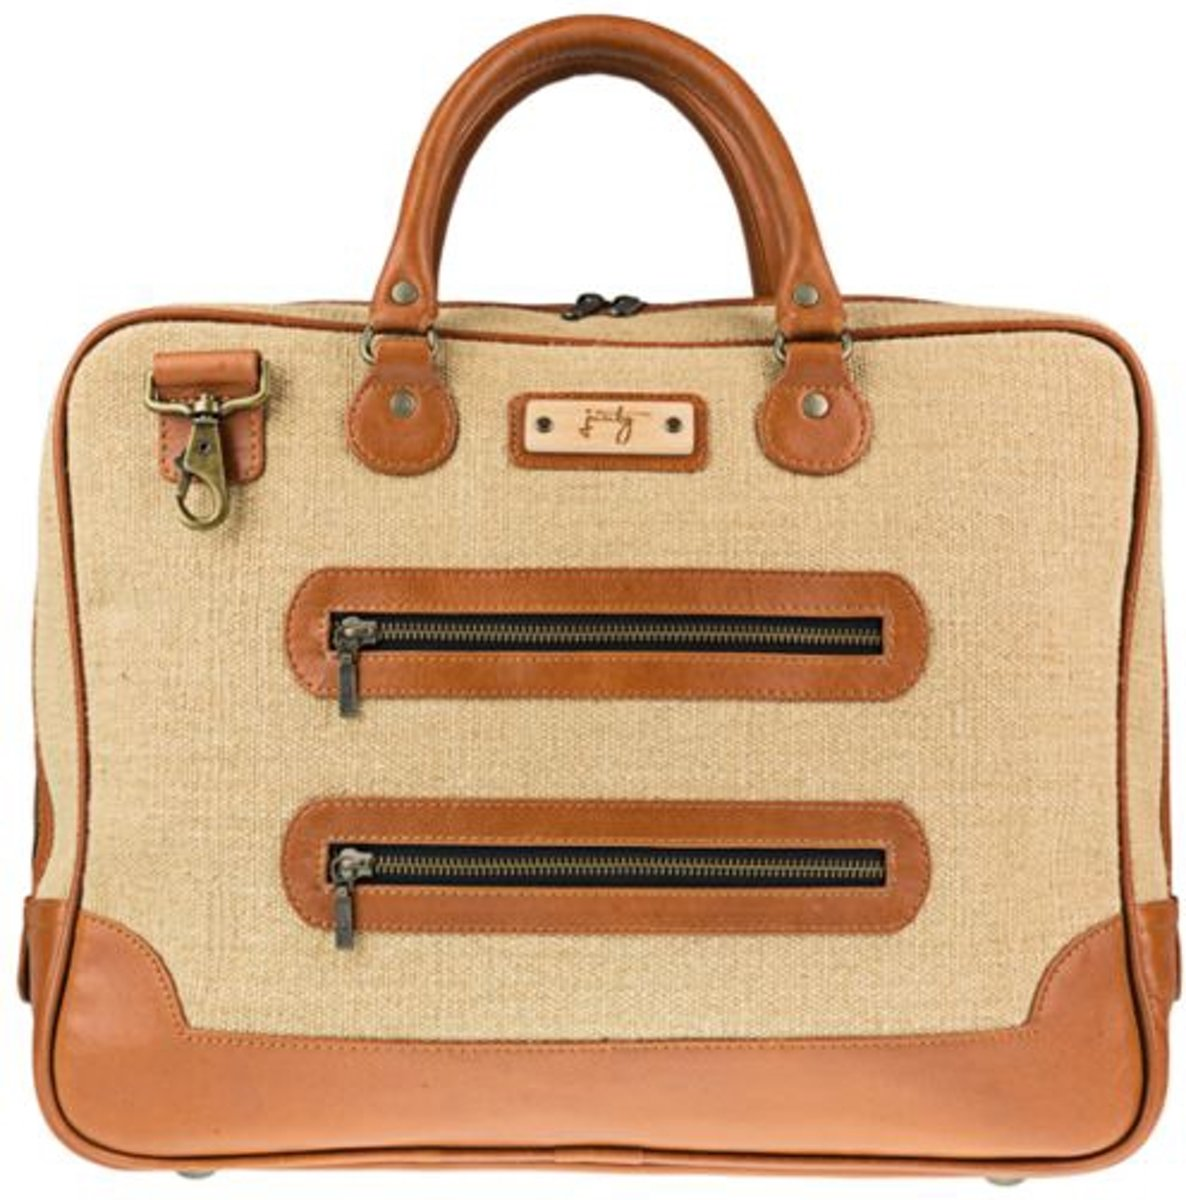 Juuty Lamar Laptop Bag Camel Camel